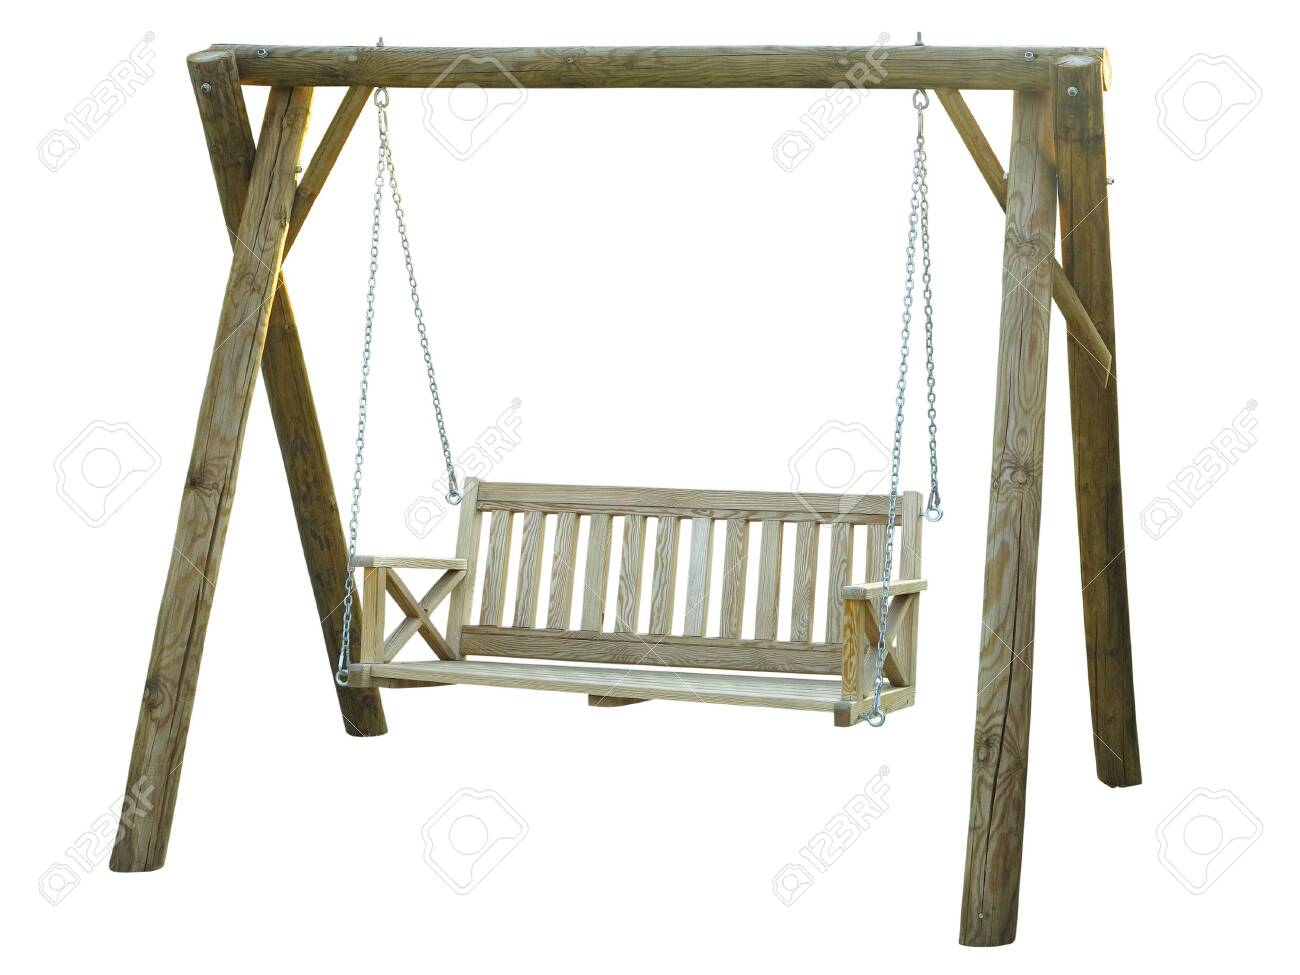 Classic Wooden Outdoor Hanging Swing Bench Furniture Isolated Stock Photo Picture And Royalty Free Image Image 129646281